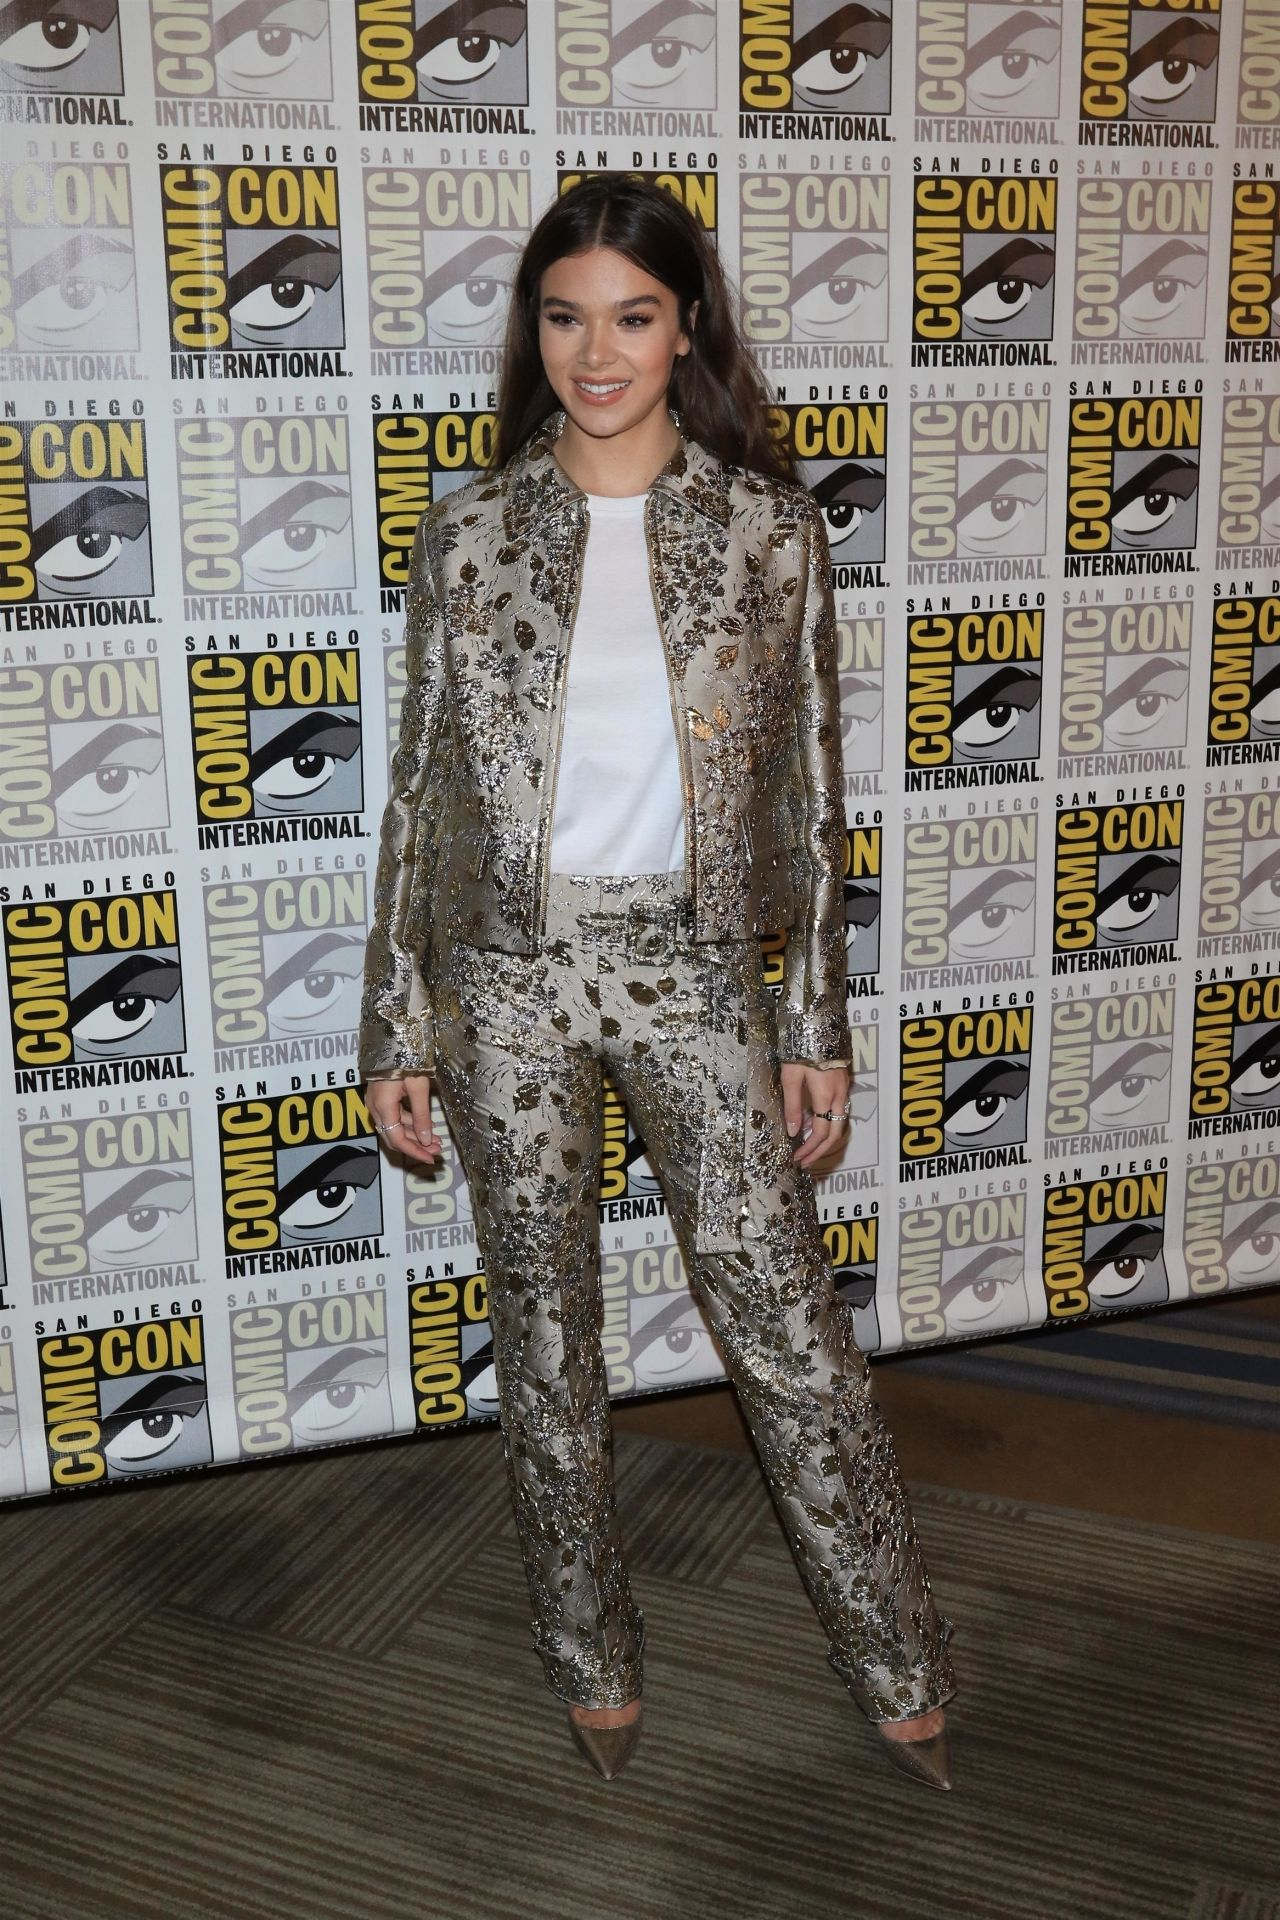 https://celebmafia.com/wp-content/uploads/2018/07/hailee-steinfeld-bumblebee-red-carpet-at-comic-con-in-san-diego-4.jpg